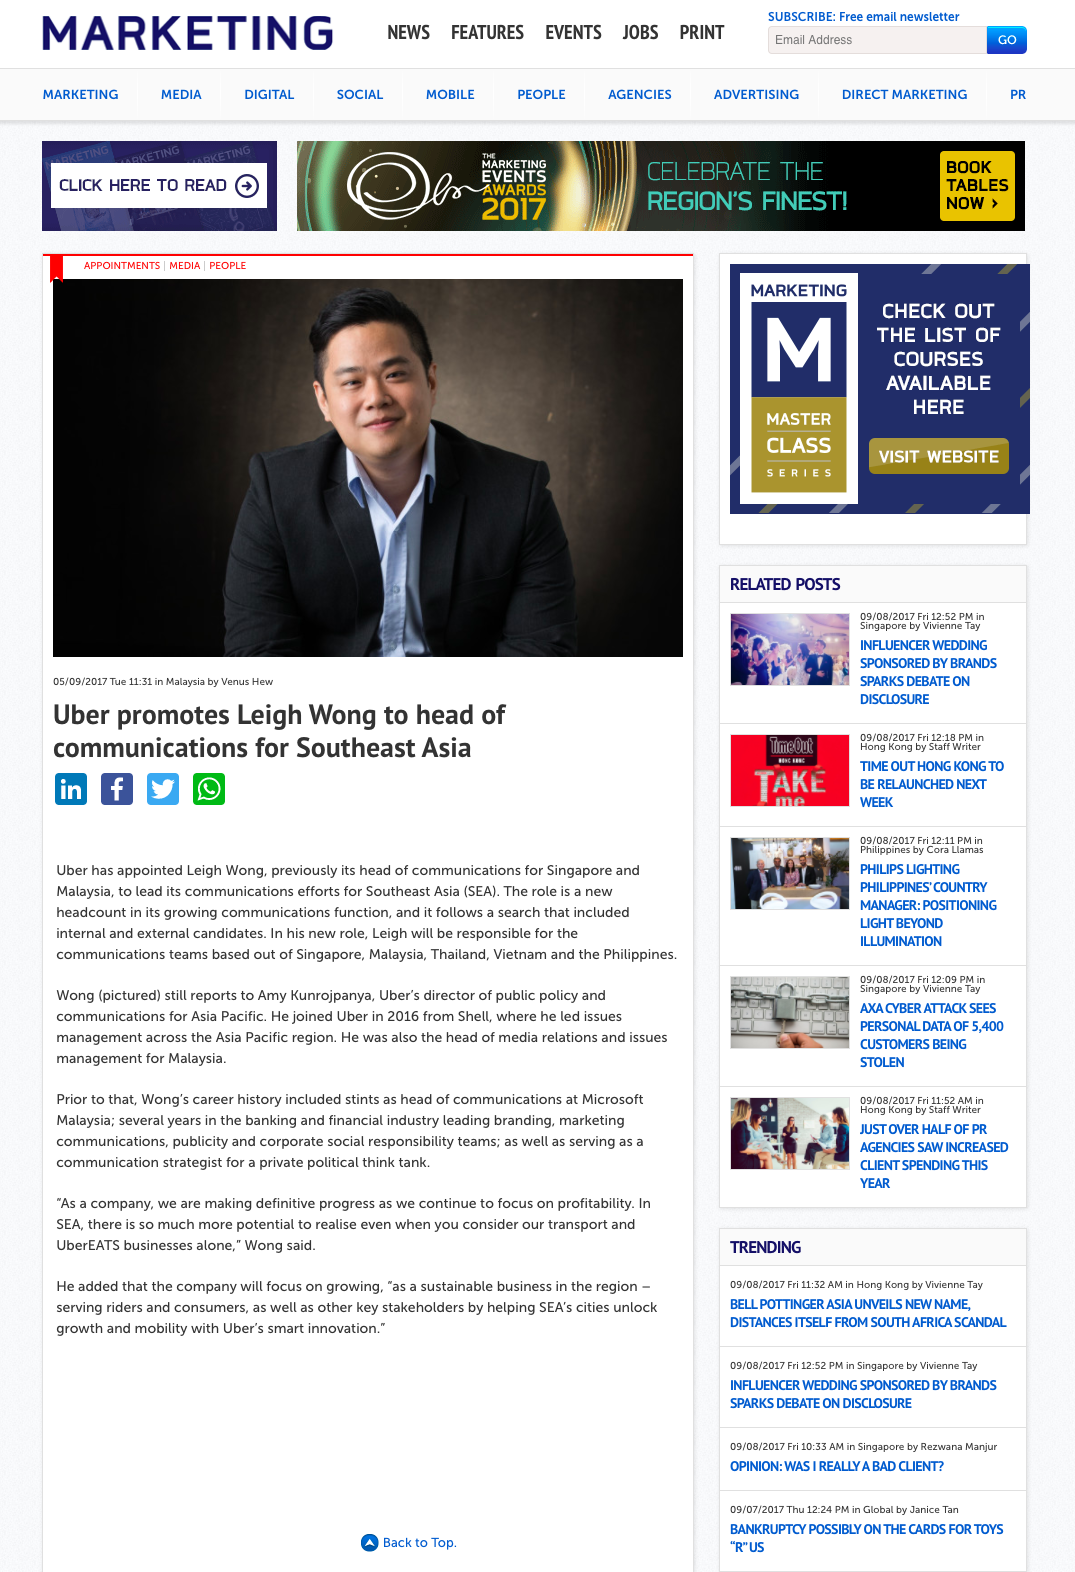 FireShot Capture 1 - Uber promotes Leigh Wong to head of co_ - http___www.marketing-interactive.co